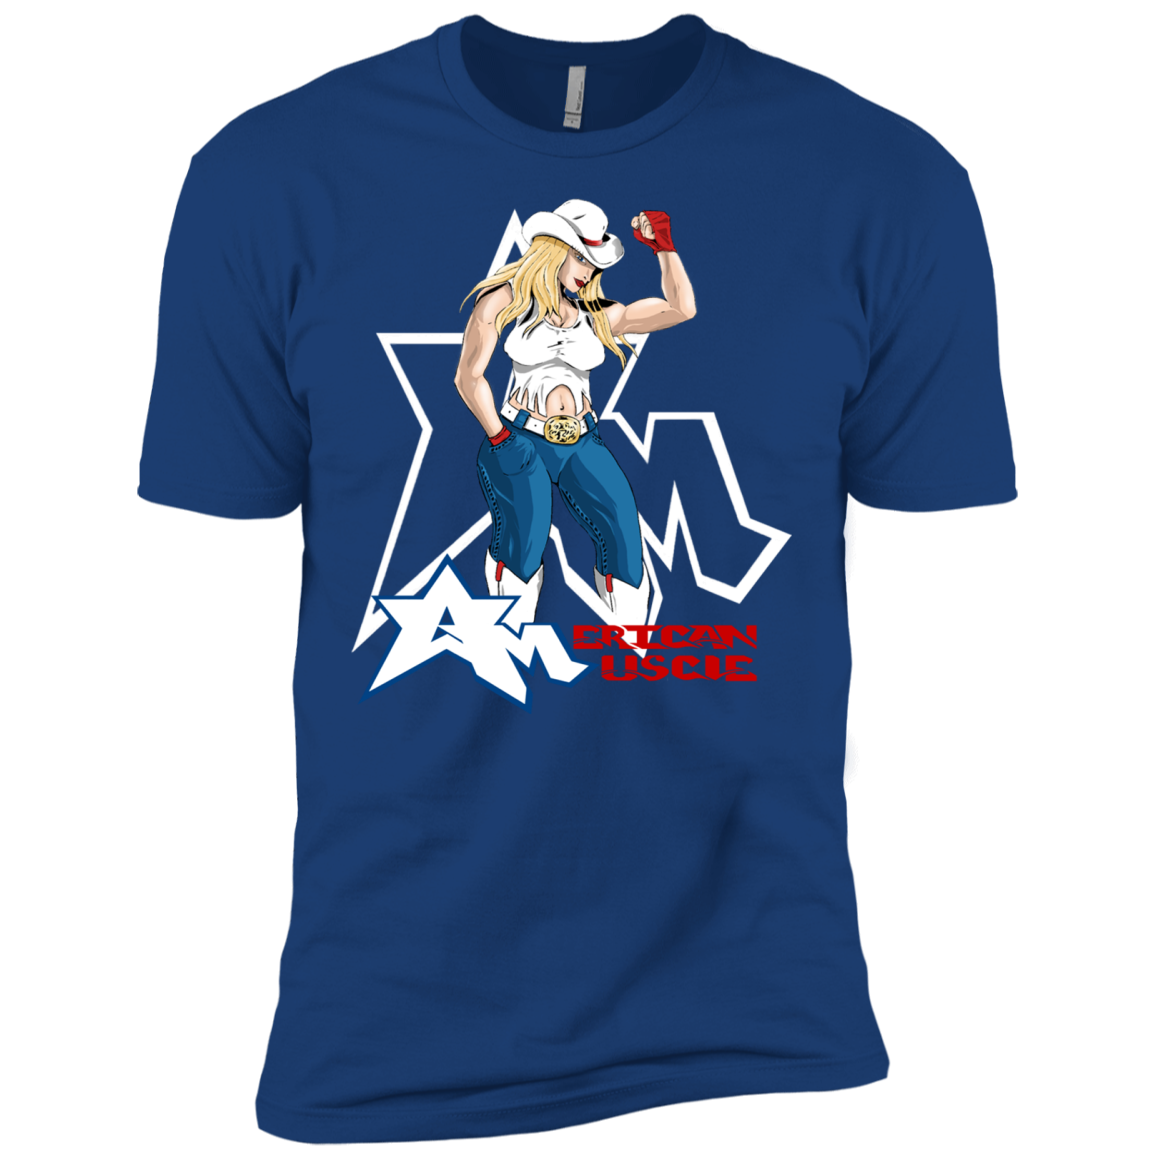 American Muscle Blonde T-Shirts Funny Sports Shirt Football Tee - The Sun Cat